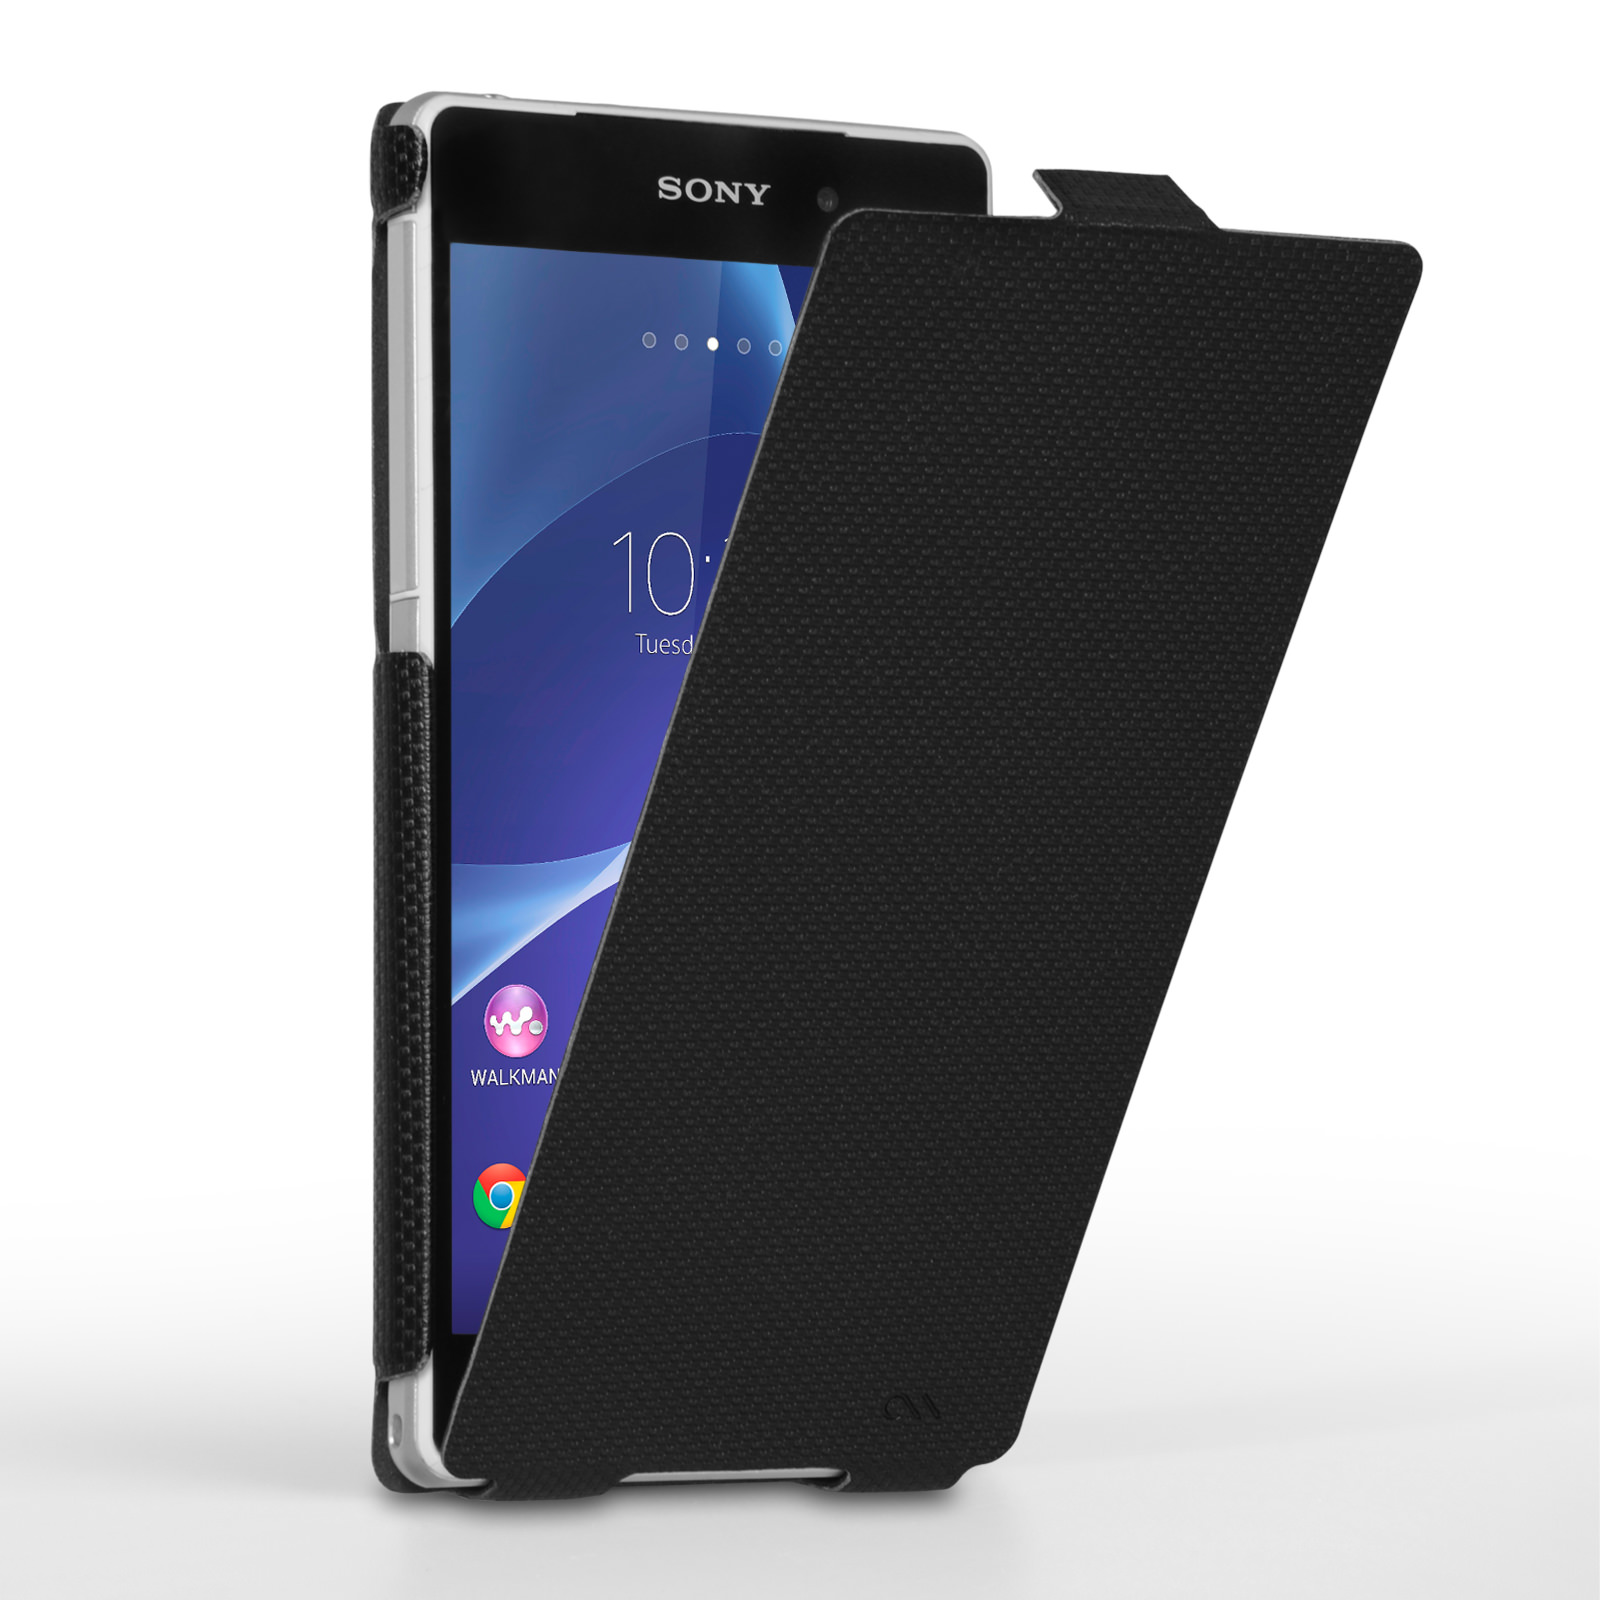 Case Mate Slim Flip Case Sony Xperia Z2 - Black